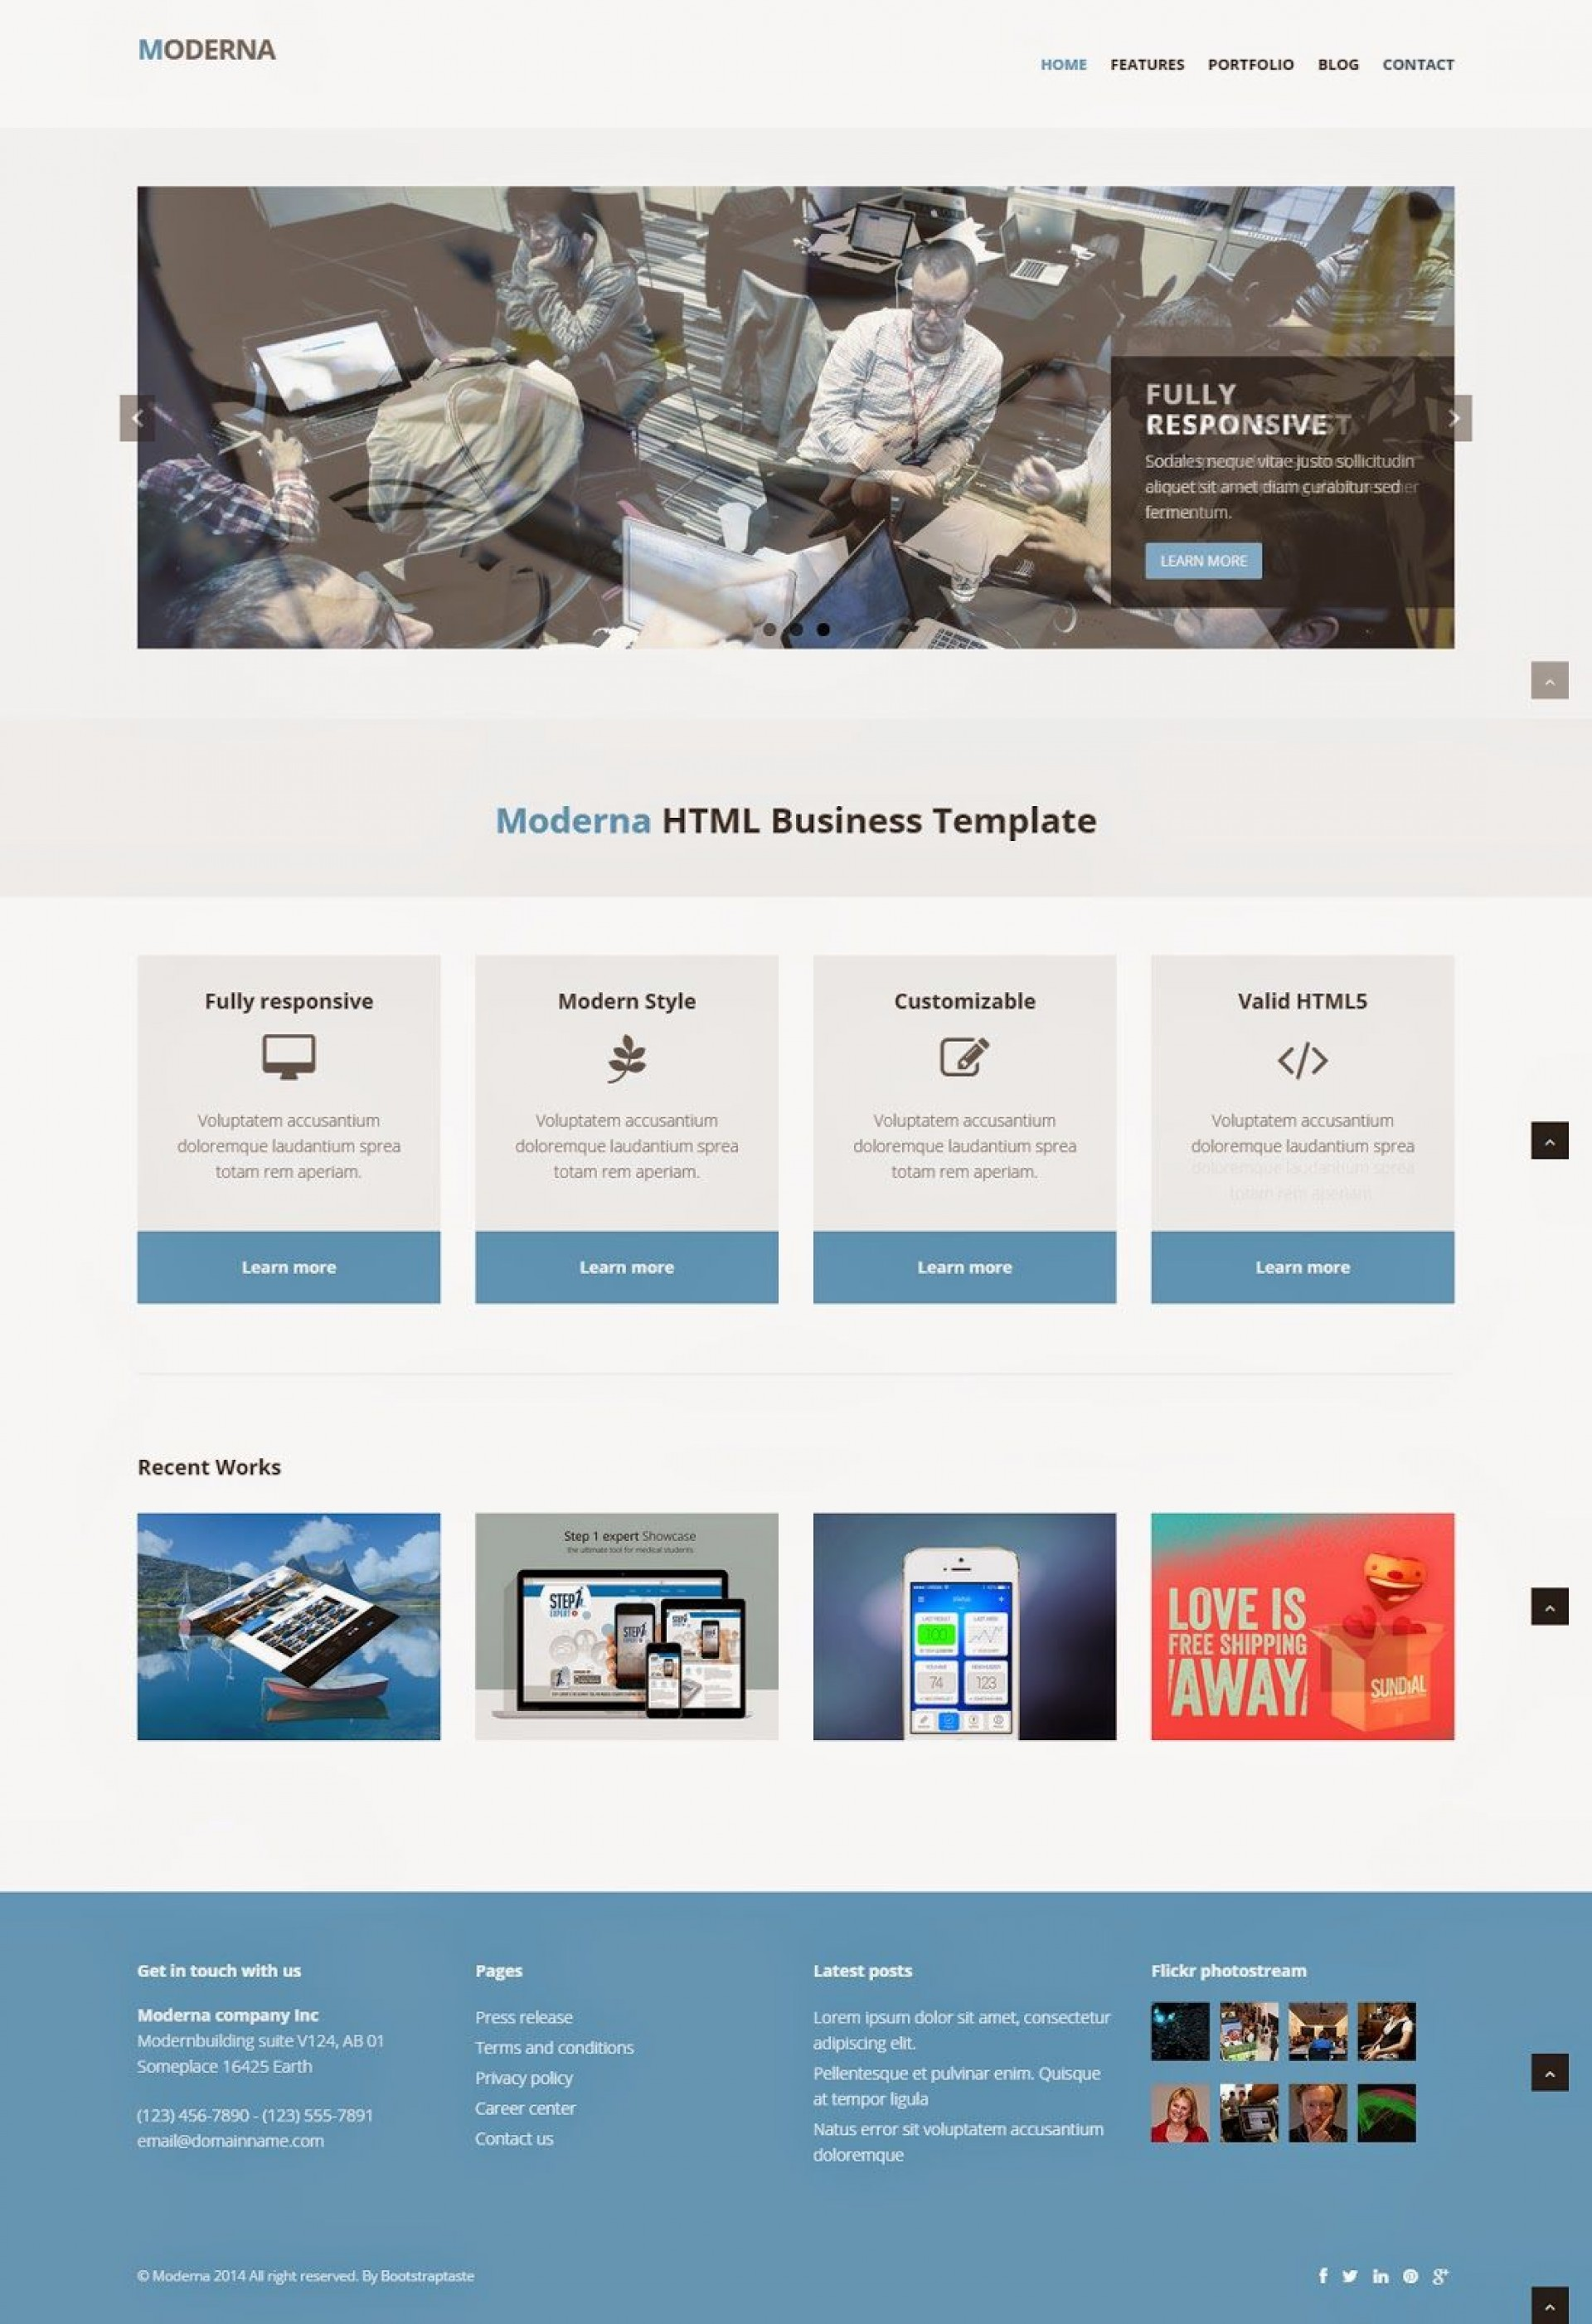 004 Fearsome Free Responsive Website Template Download Html And Cs Jquery Inspiration  For It Company1920